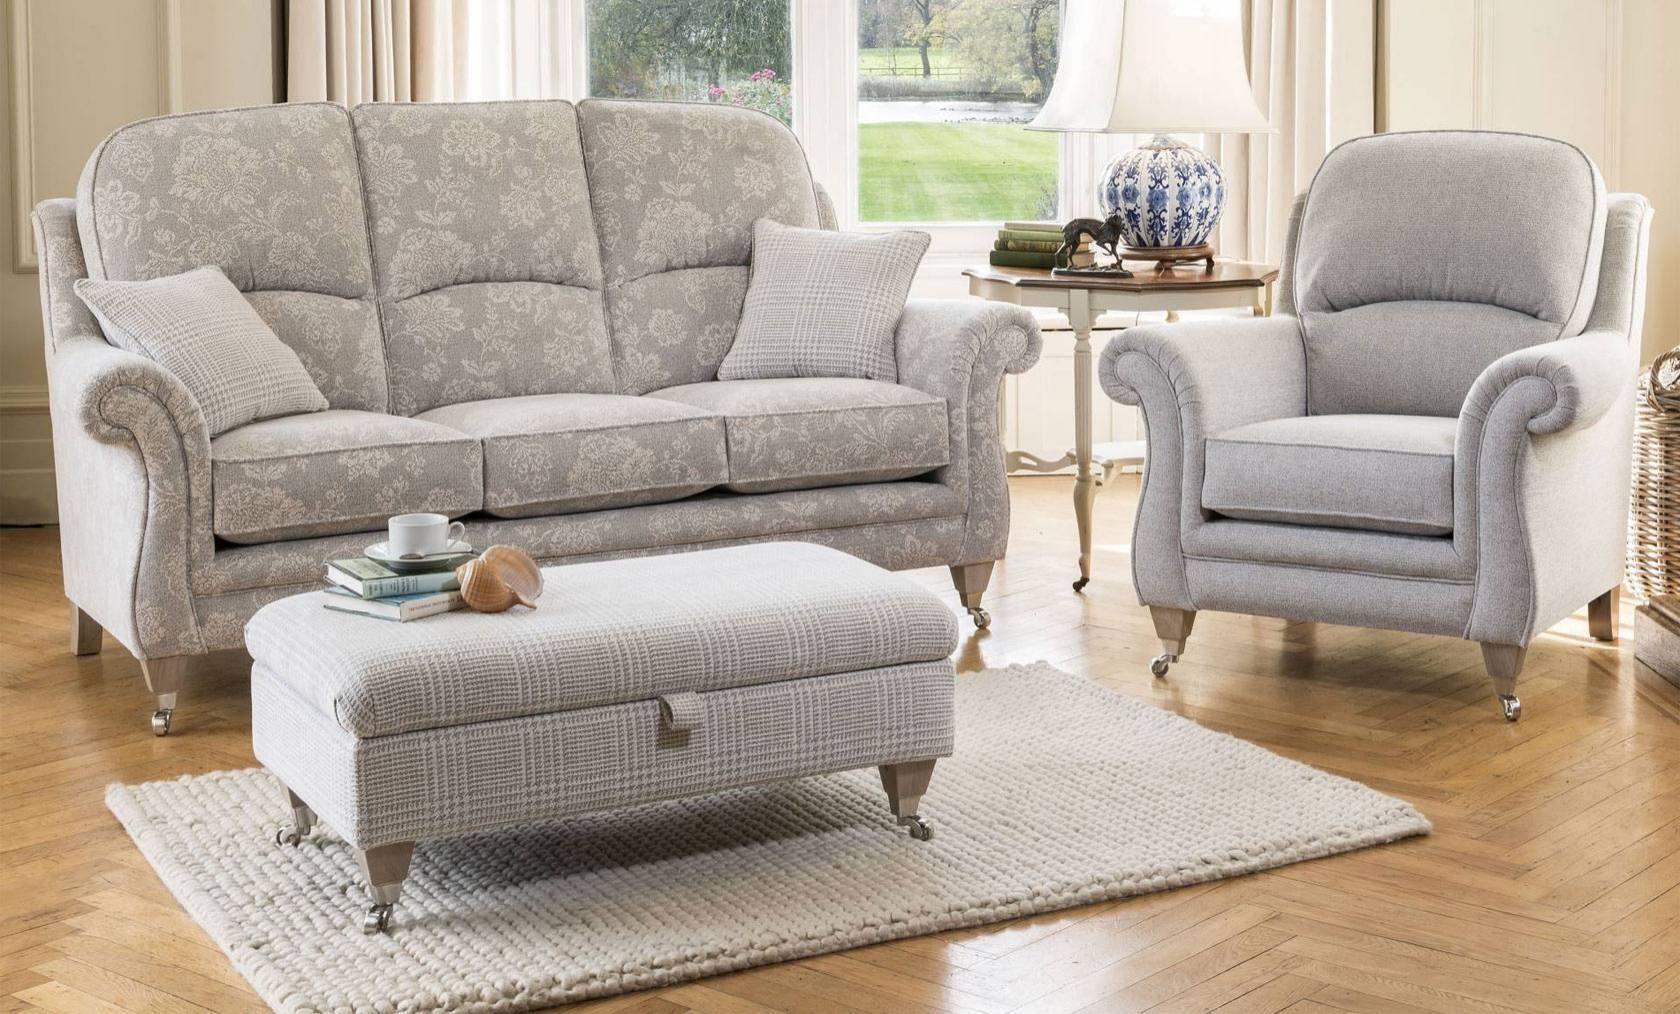 Sofas | Suites | Recliners | Chairs | Corner Sofas At Relax Sofas regarding Sofas and Chairs (Image 27 of 30)